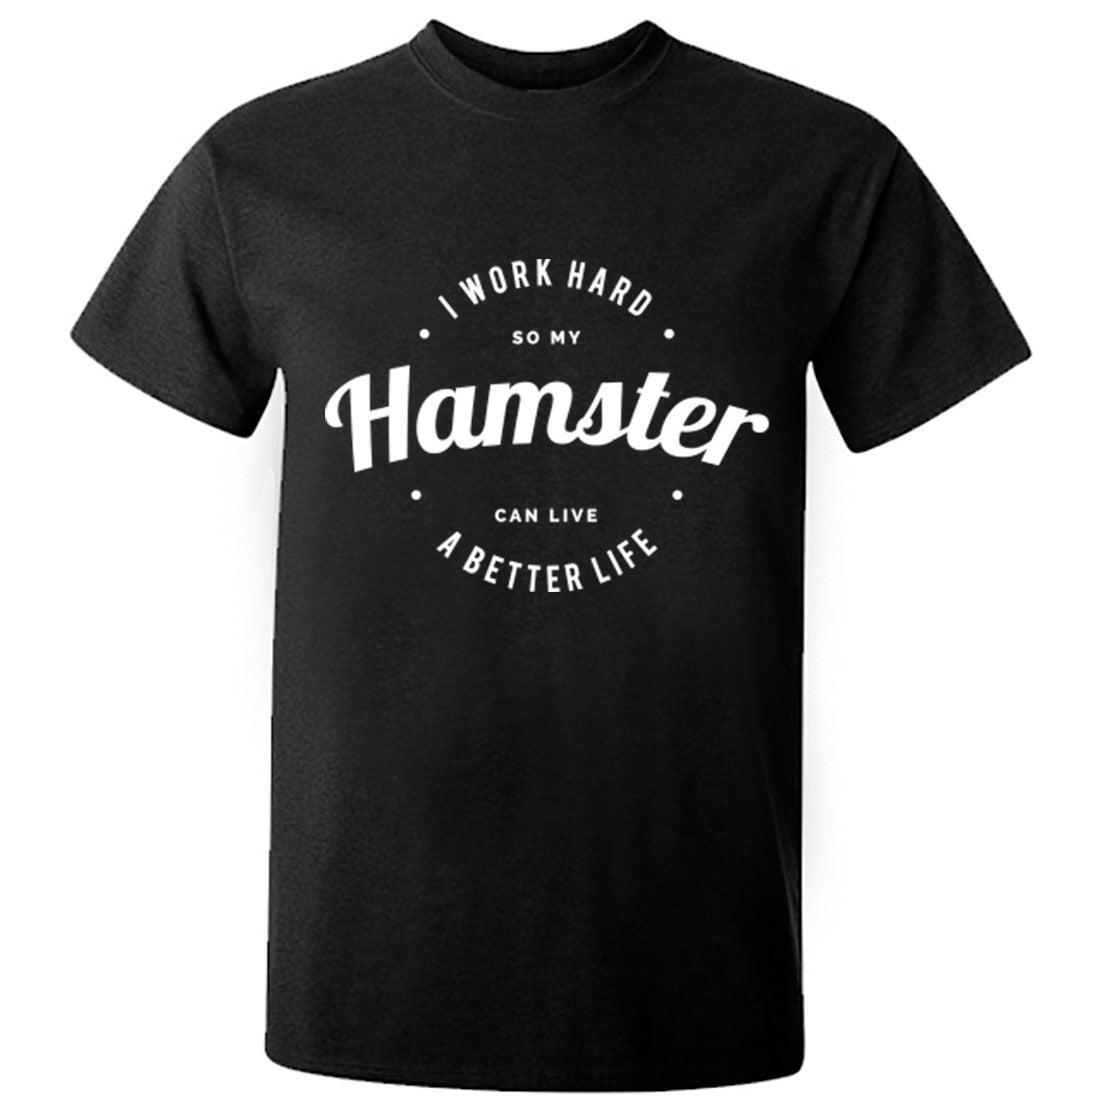 I Work Hard So My Hamster Can Live A Better Life Unisex Fit T-Shirt K0434 - Illustrated Identity Ltd.